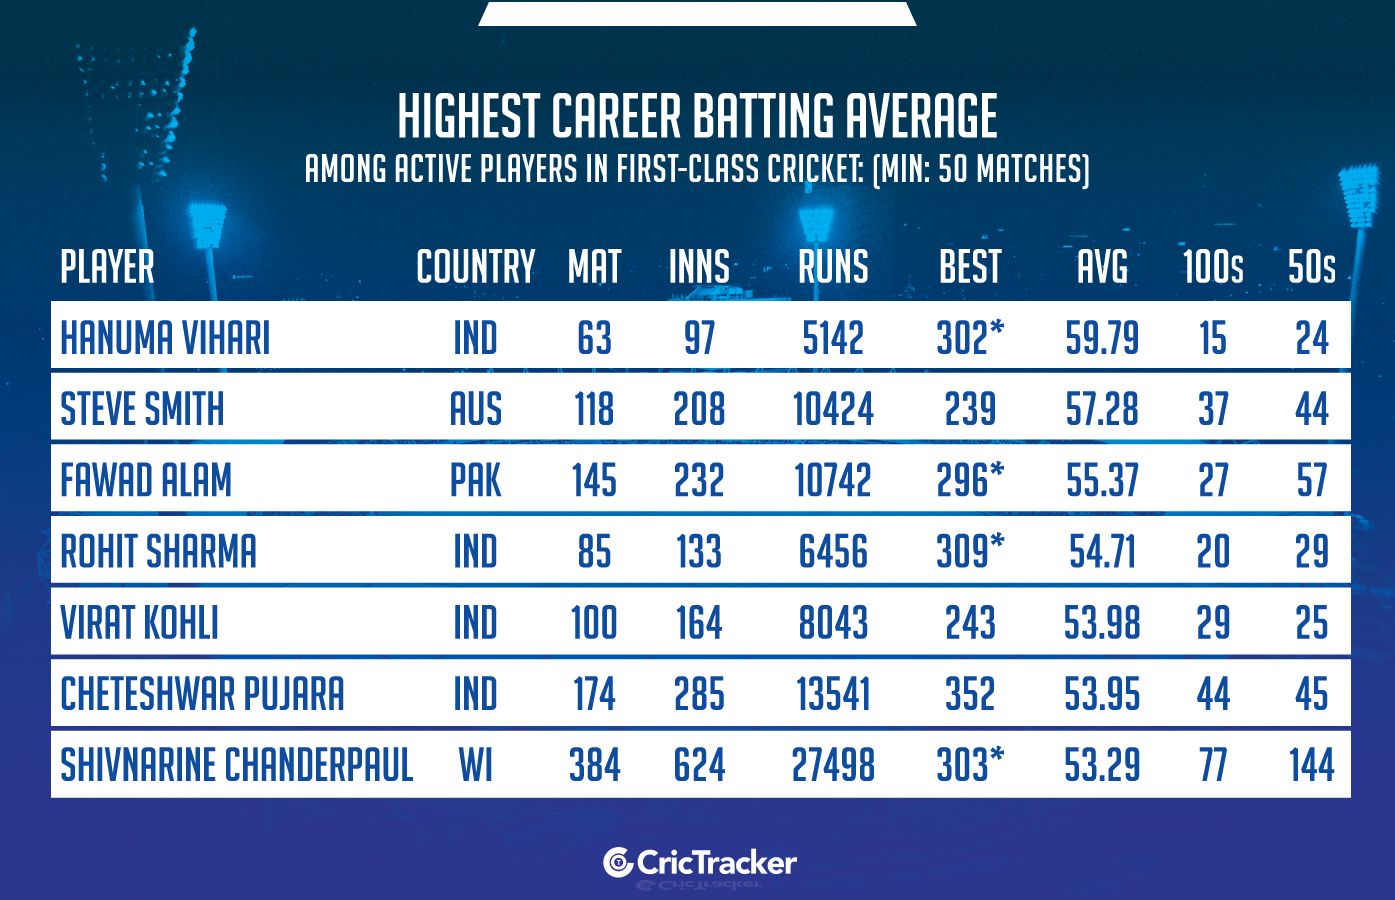 Highest-career-batting-average-among-active-players-in-first-class-cricket-Min-50-innings